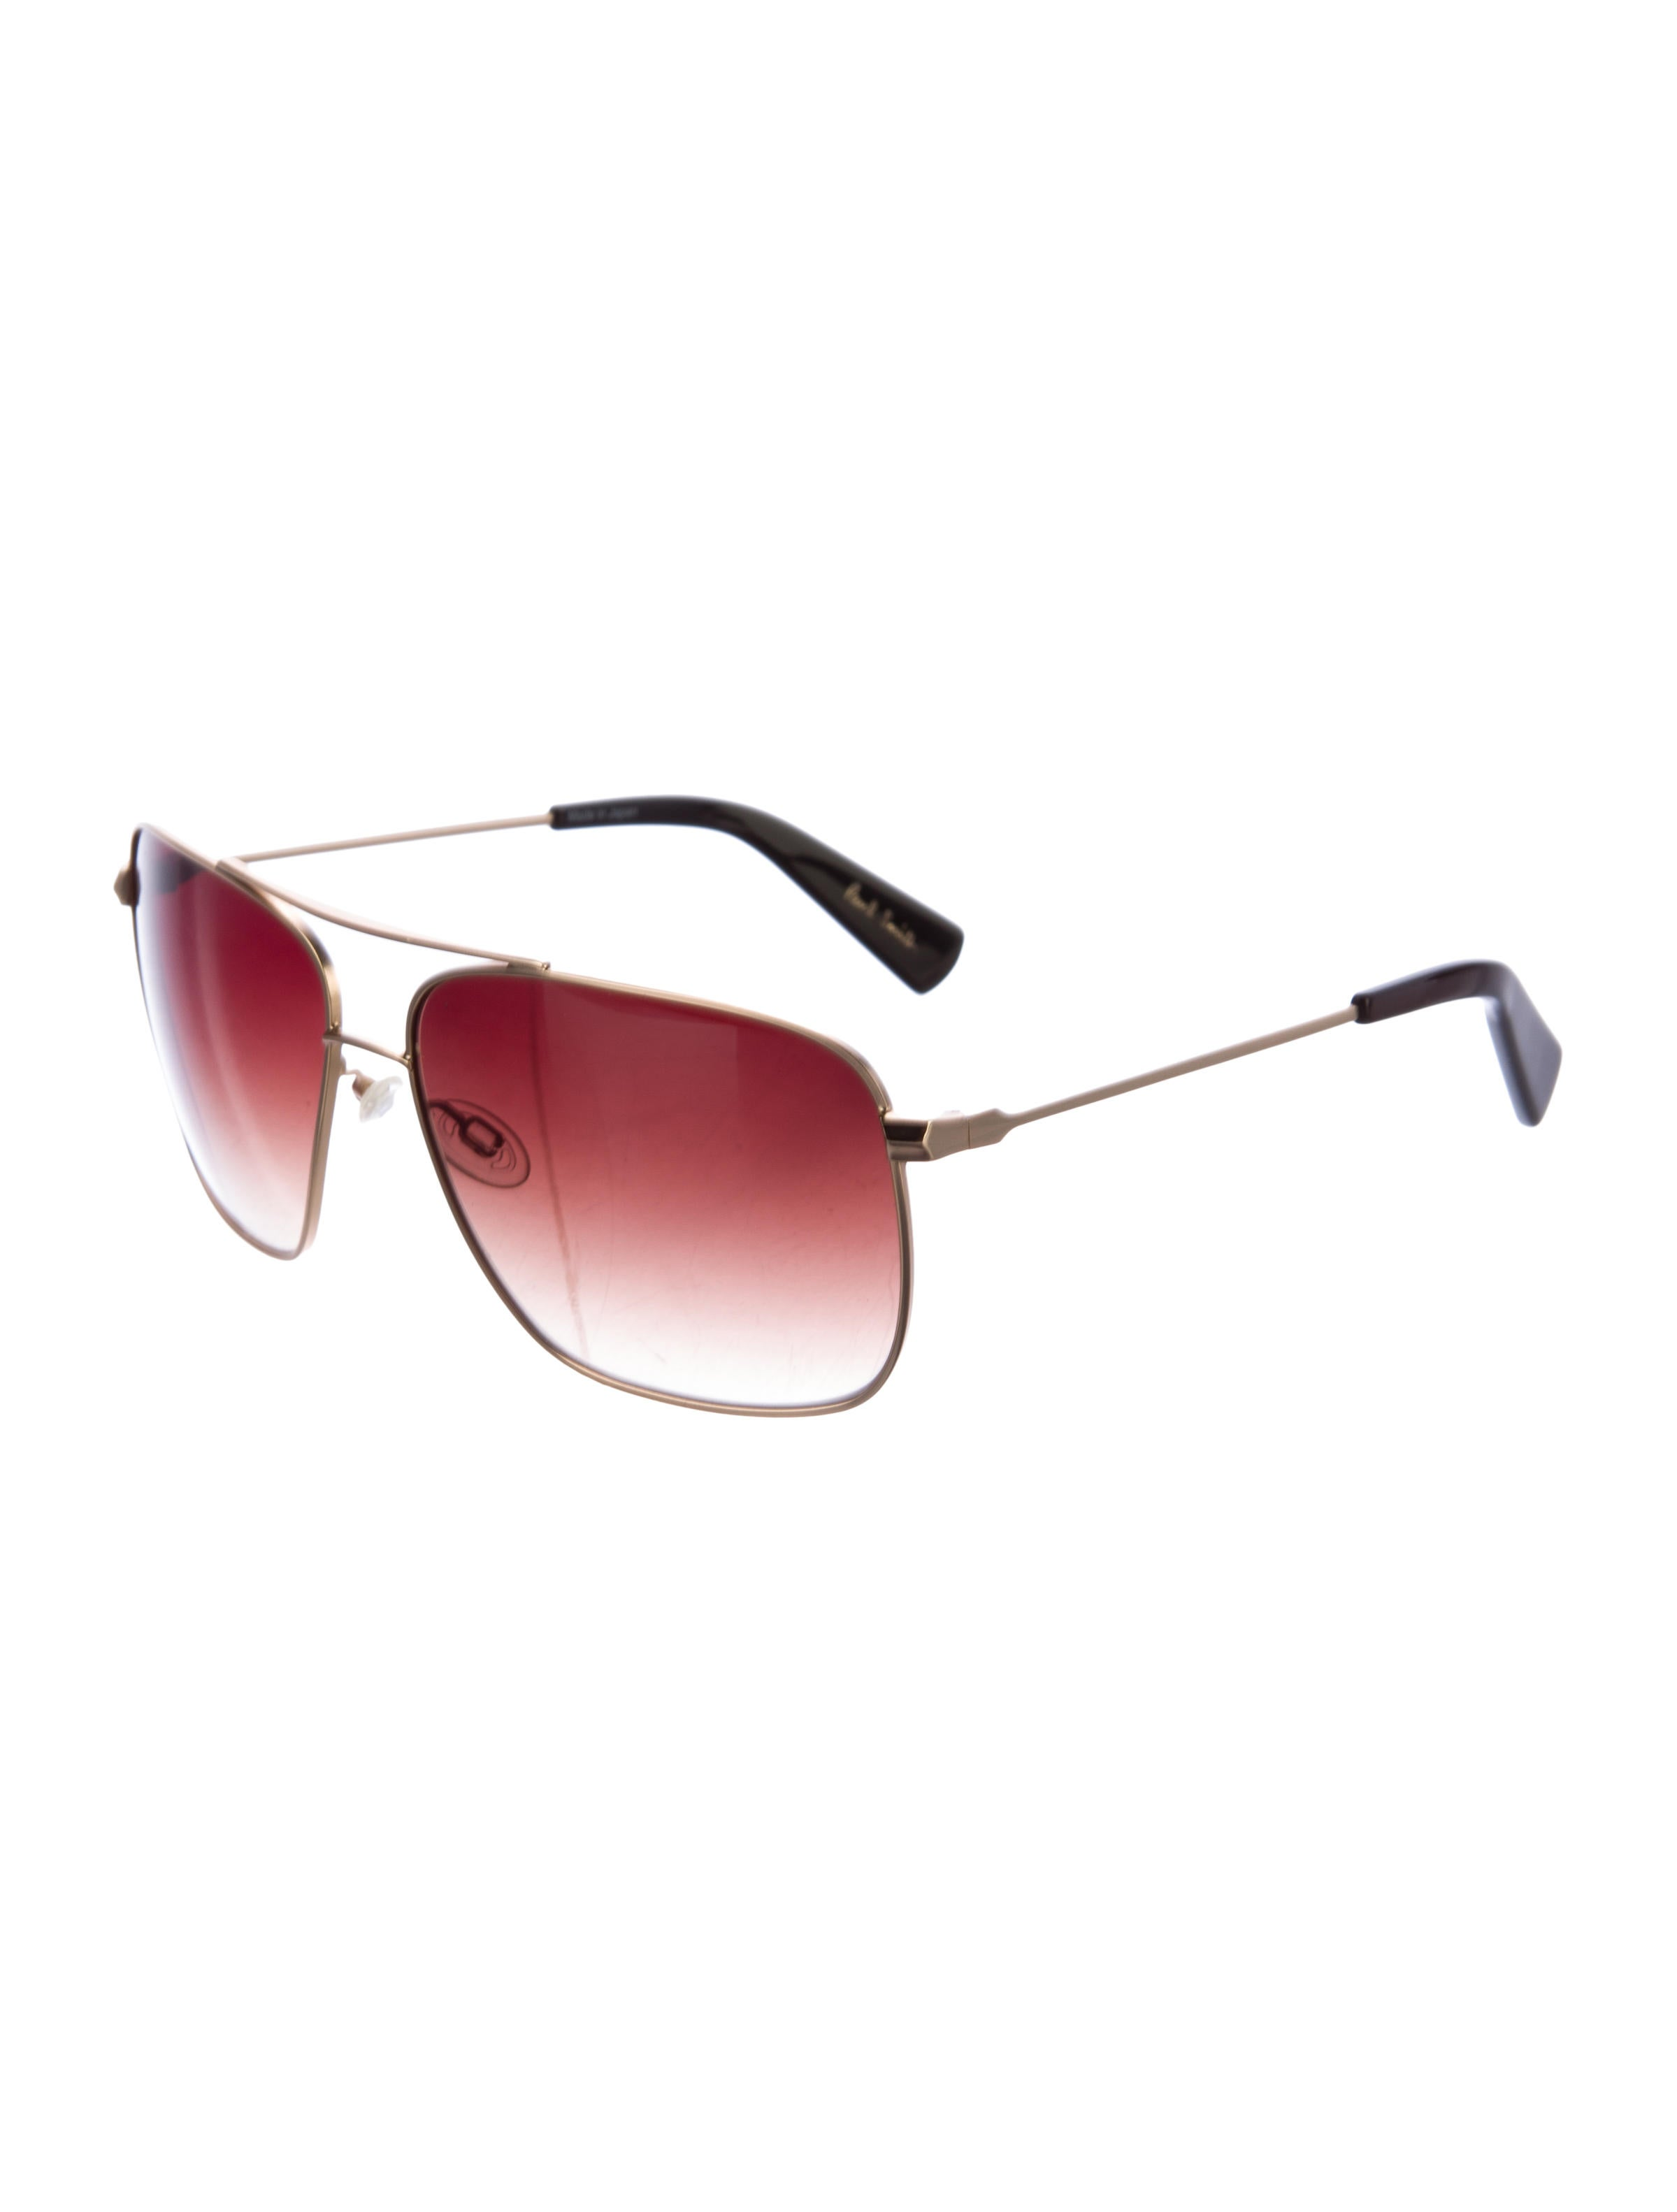 44f9bff21a Paul Smith Orsett Aviator Sunglasses